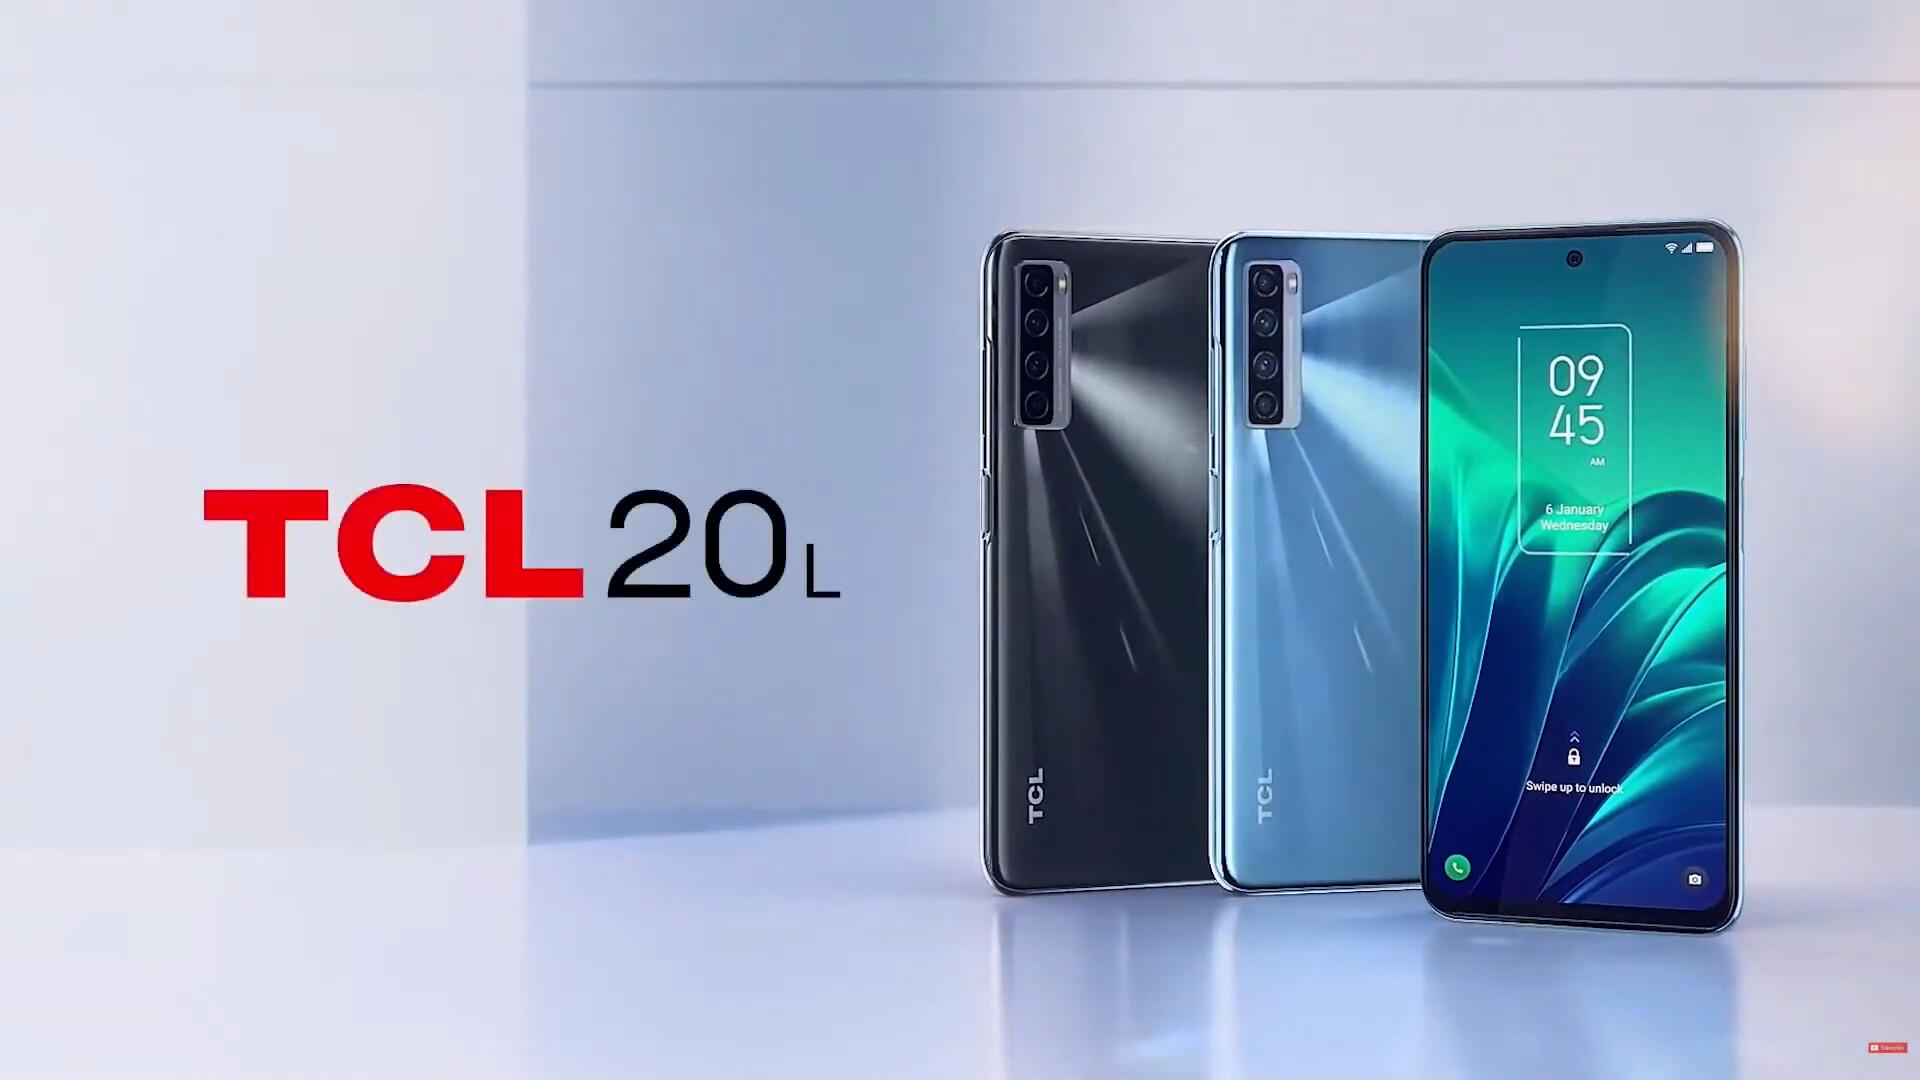 Video: TCL unveils 20L and 20L Plus mobile phone